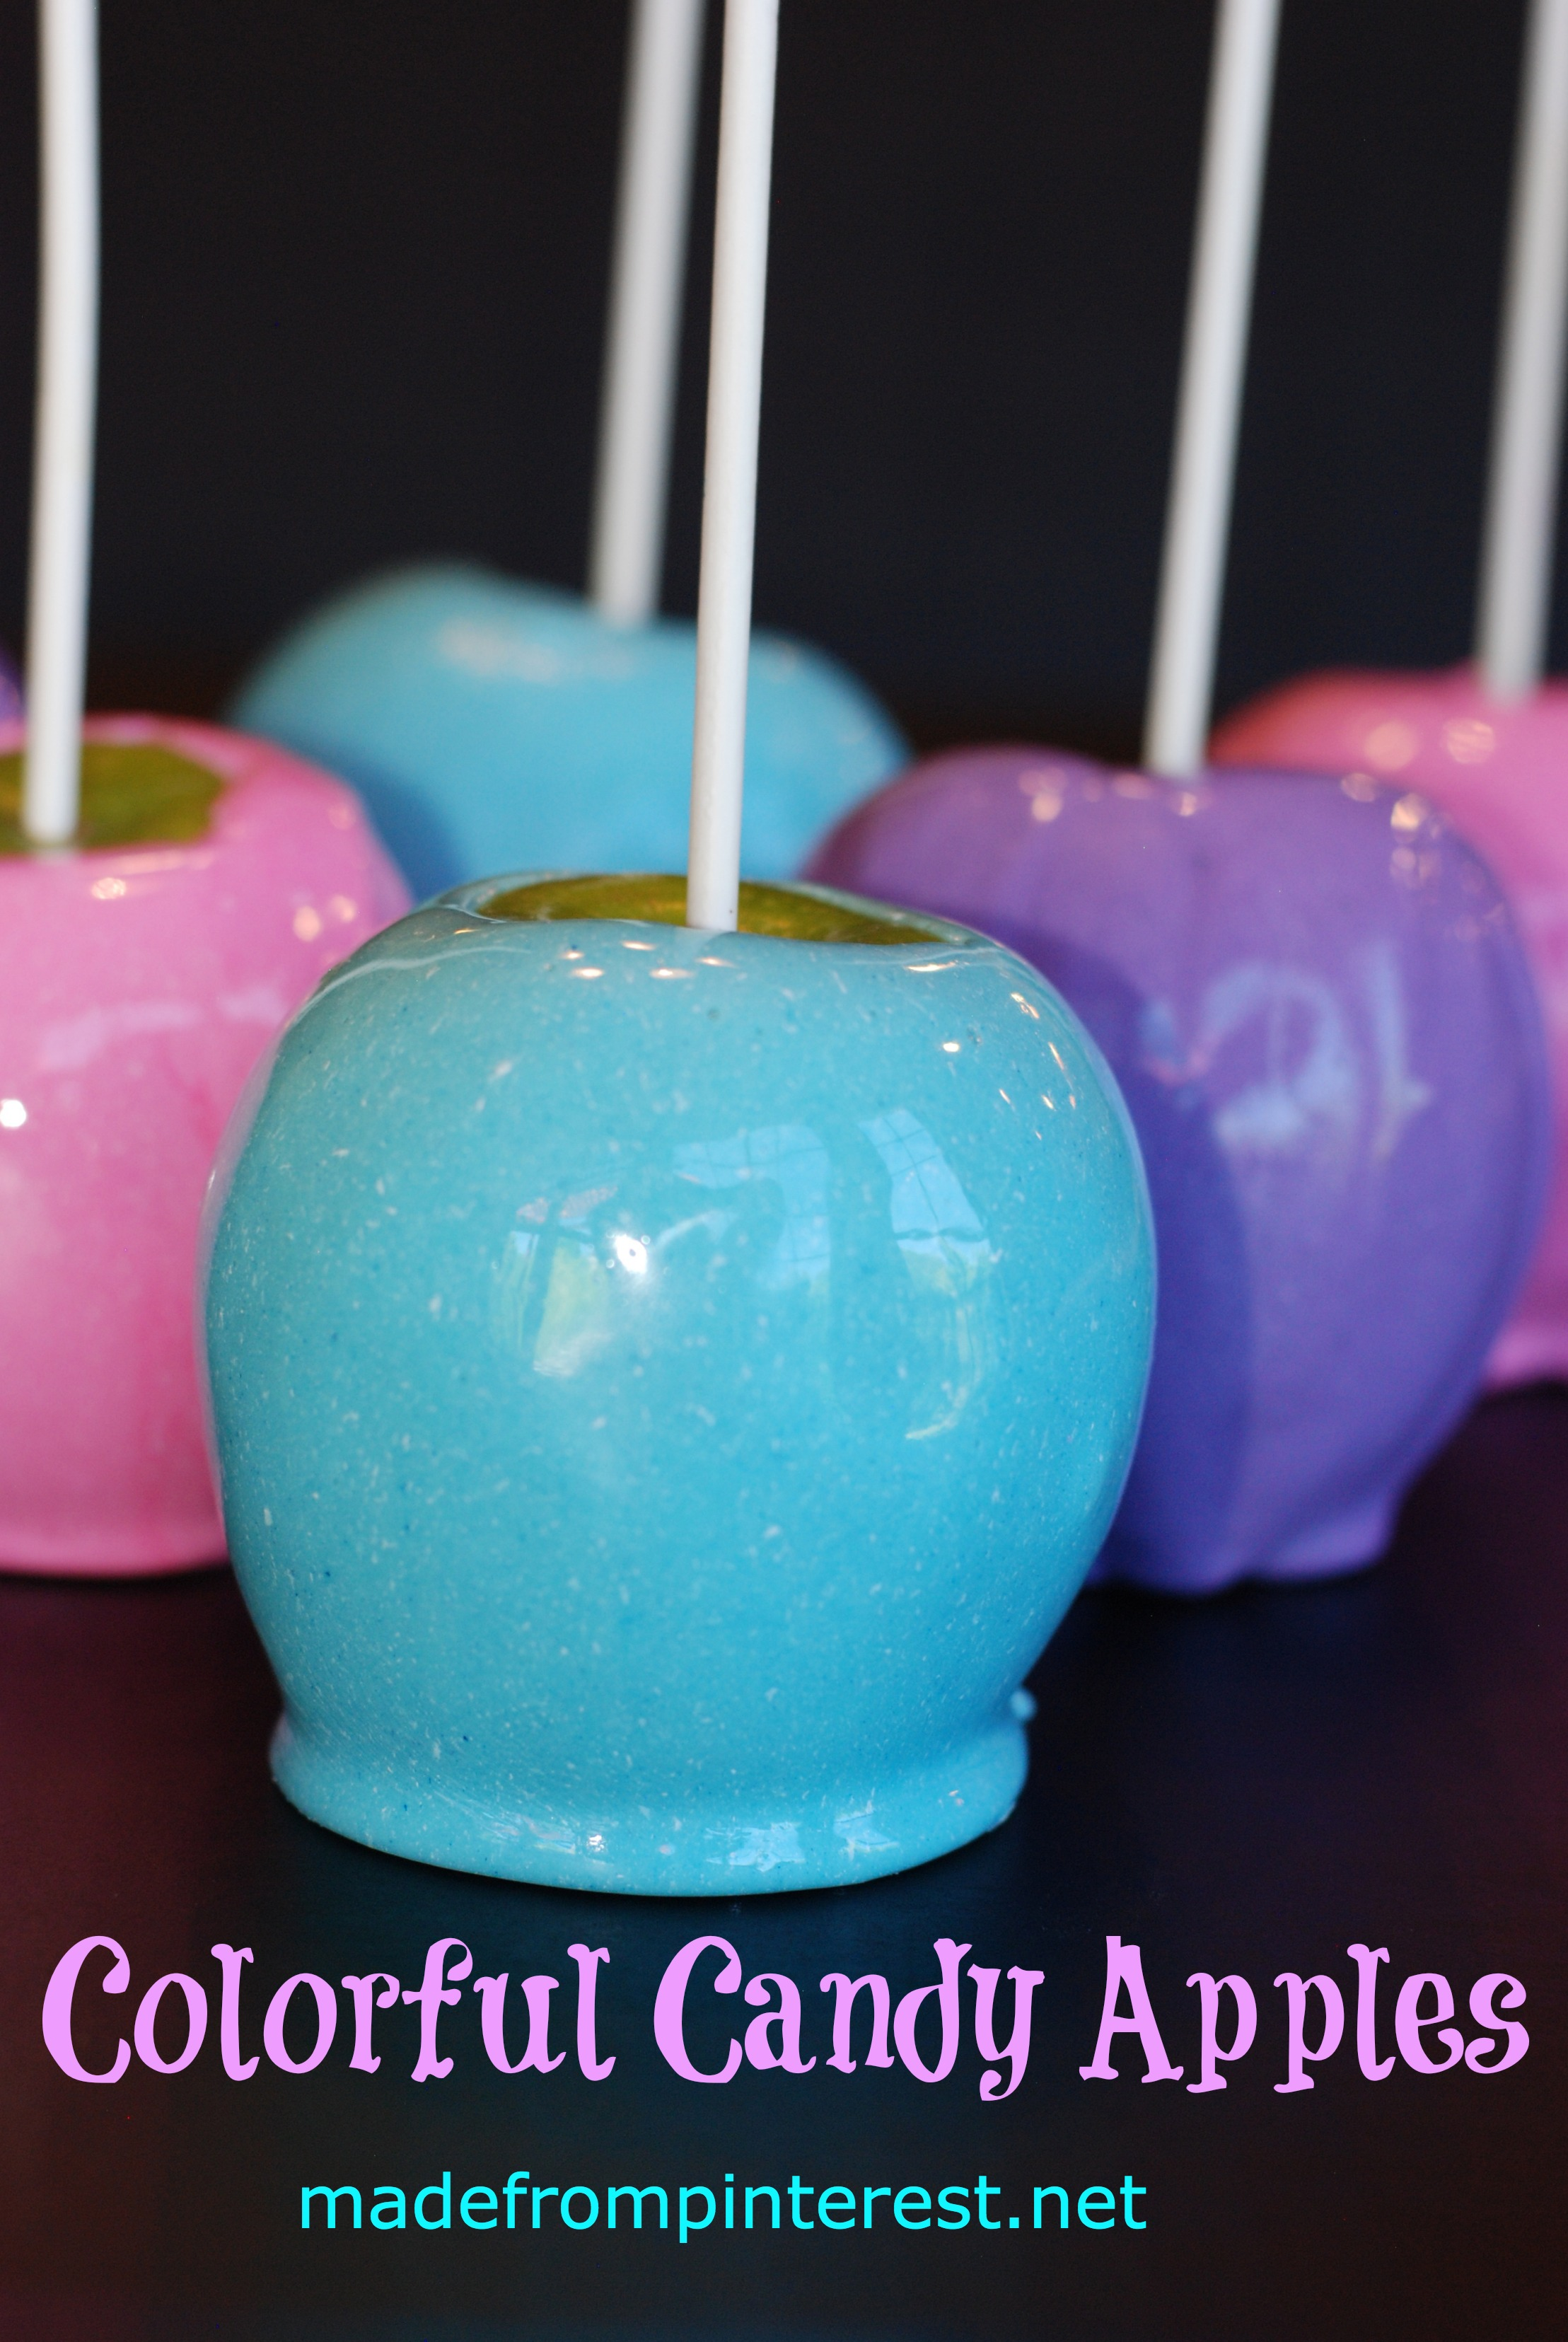 Colorful Candy Apples Tgif This Grandma Is Fun